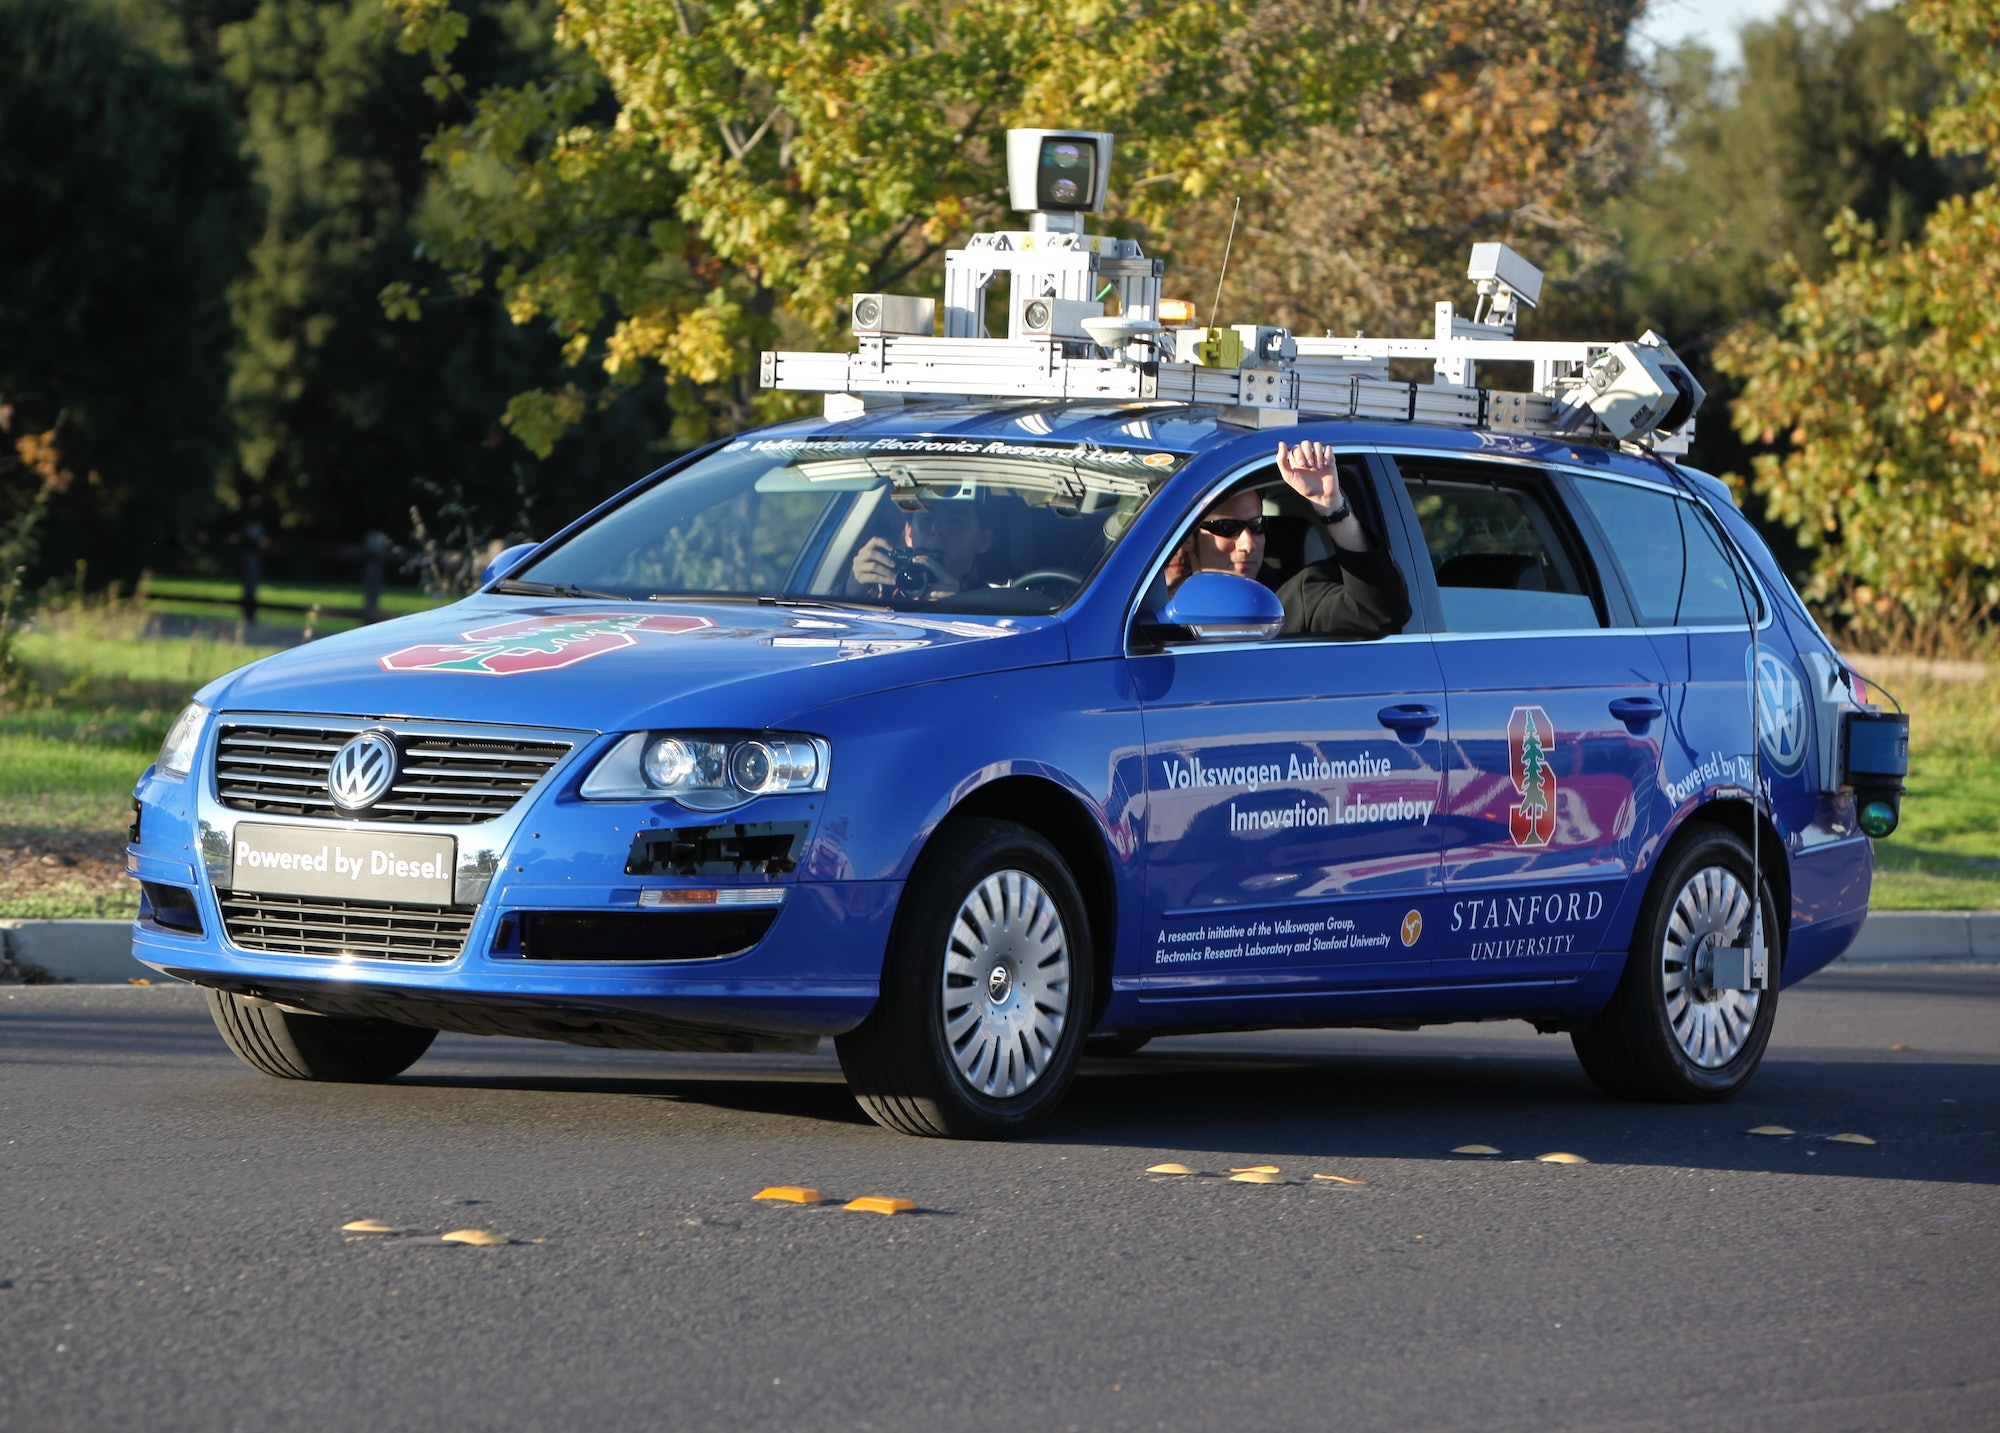 Will the autonomous car need a passport?